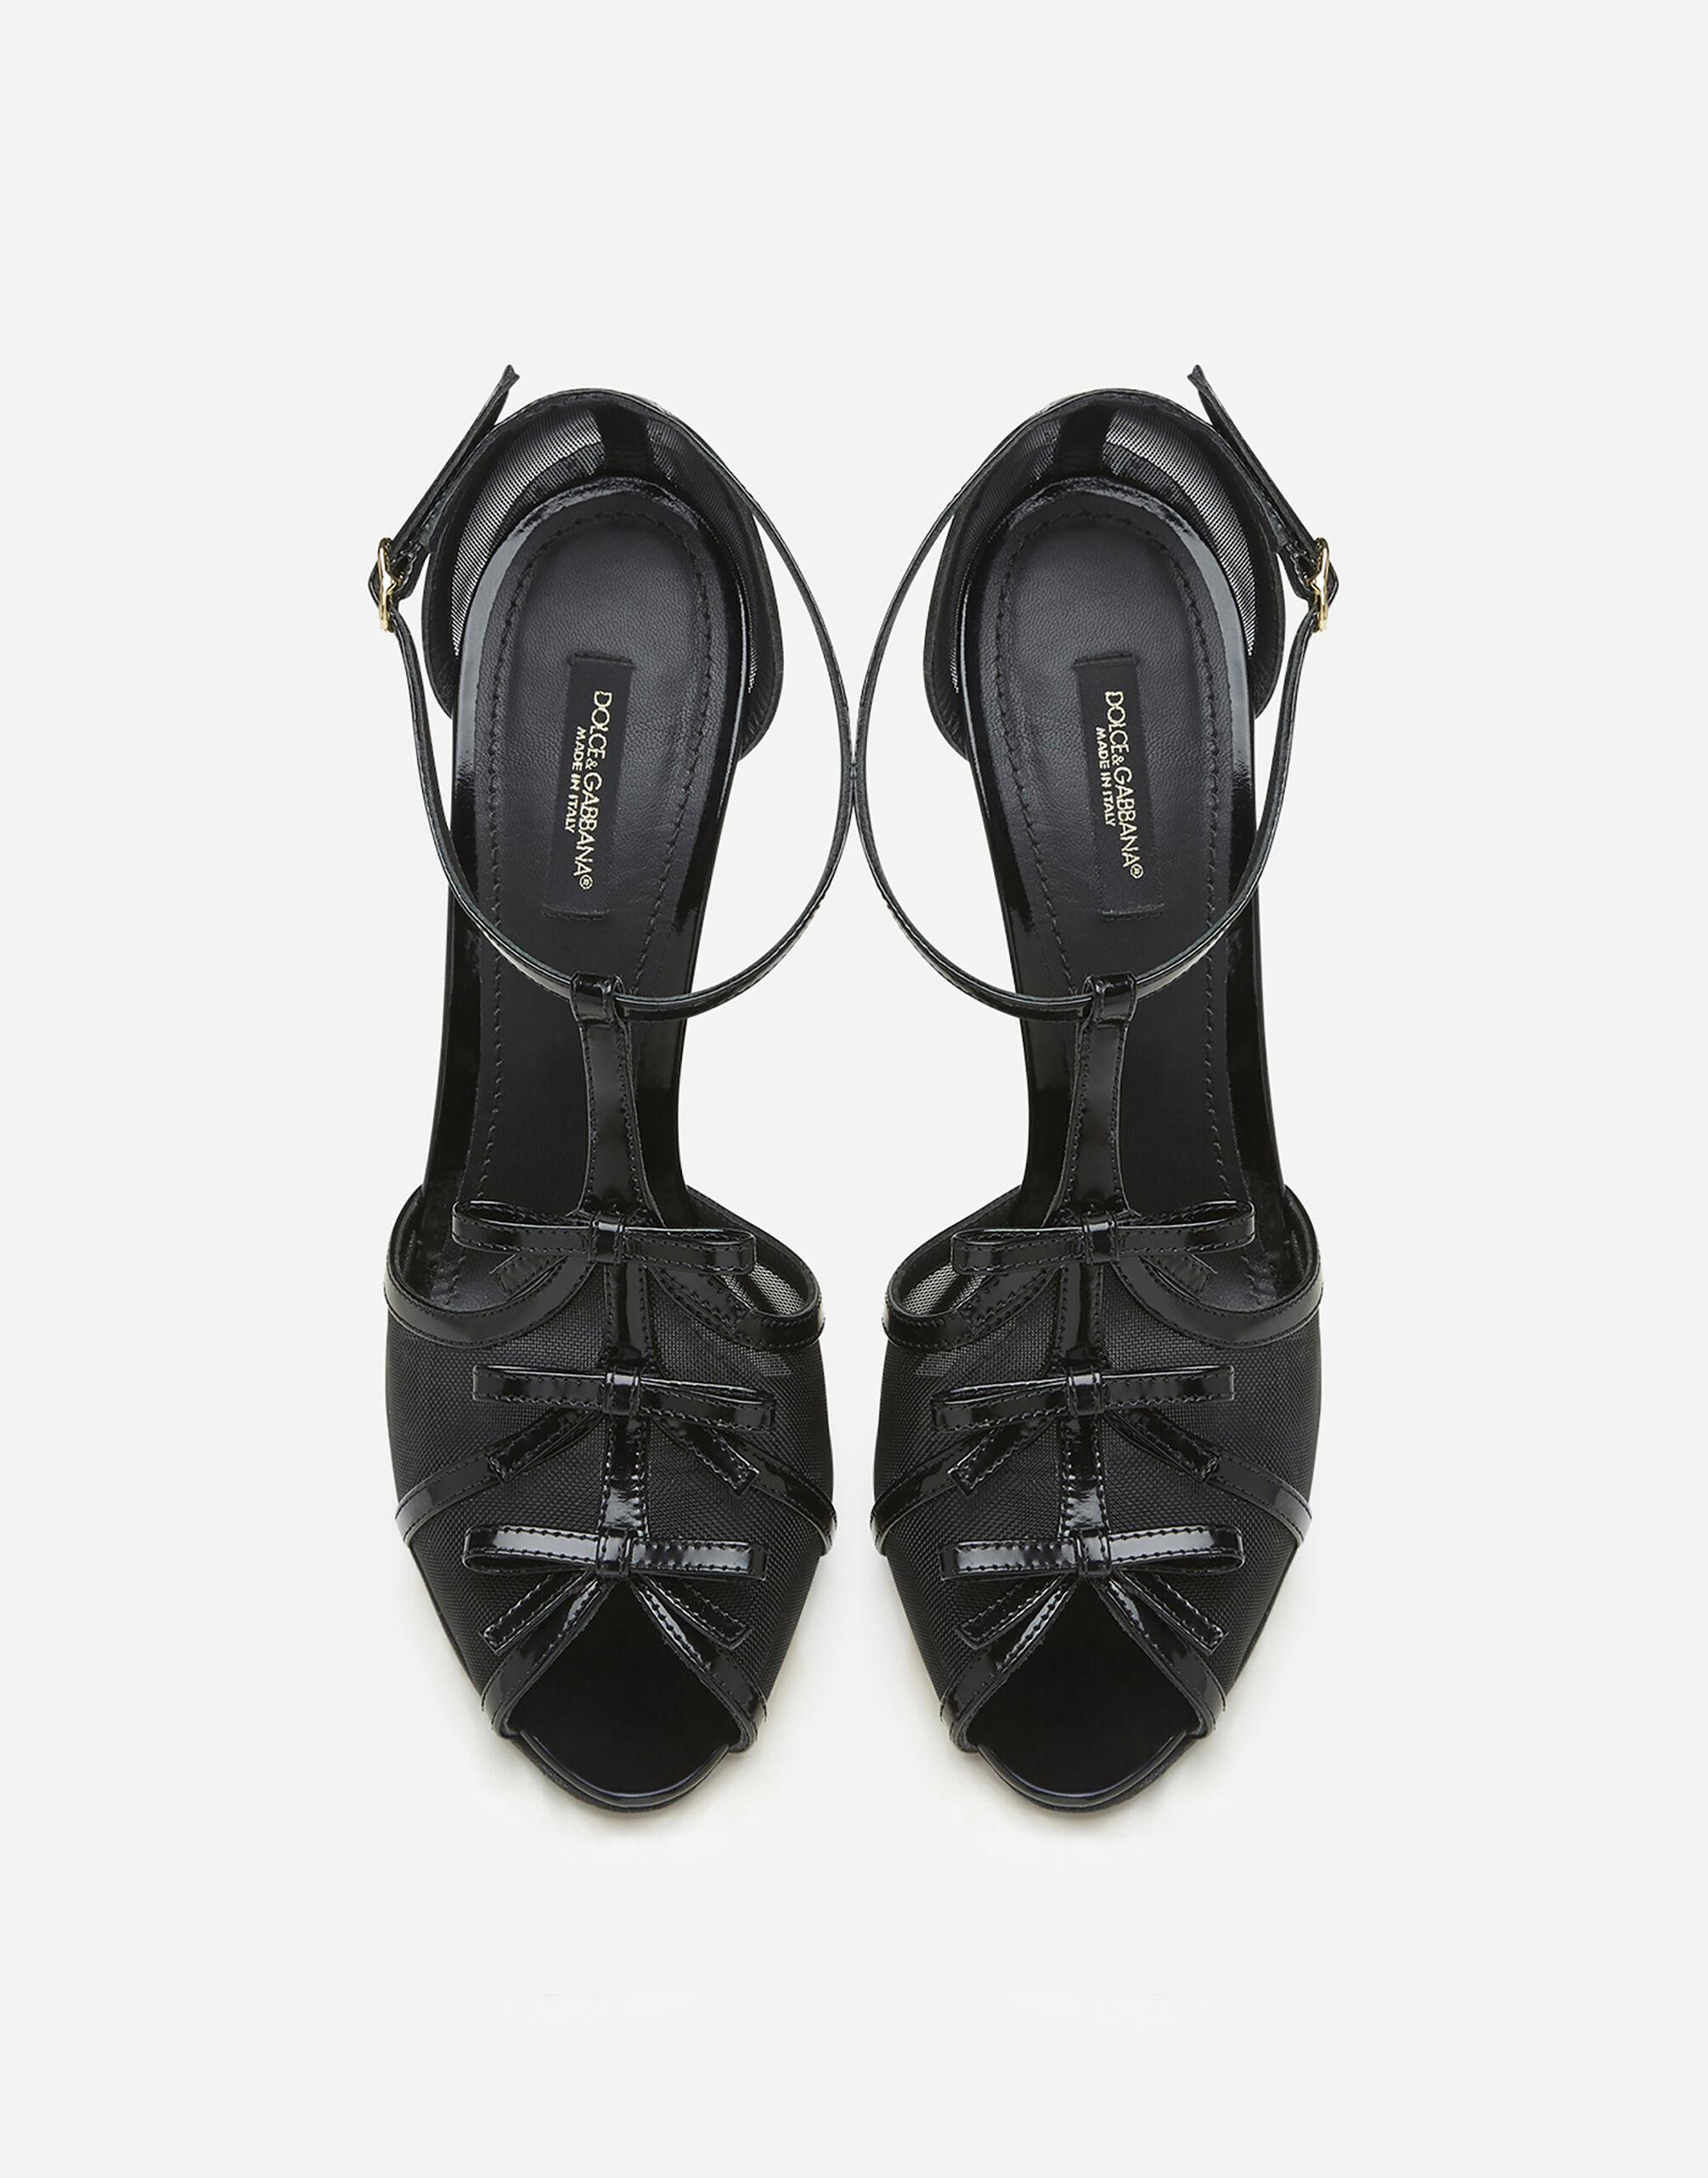 Polished calfskin and mesh sandals with small bows 3